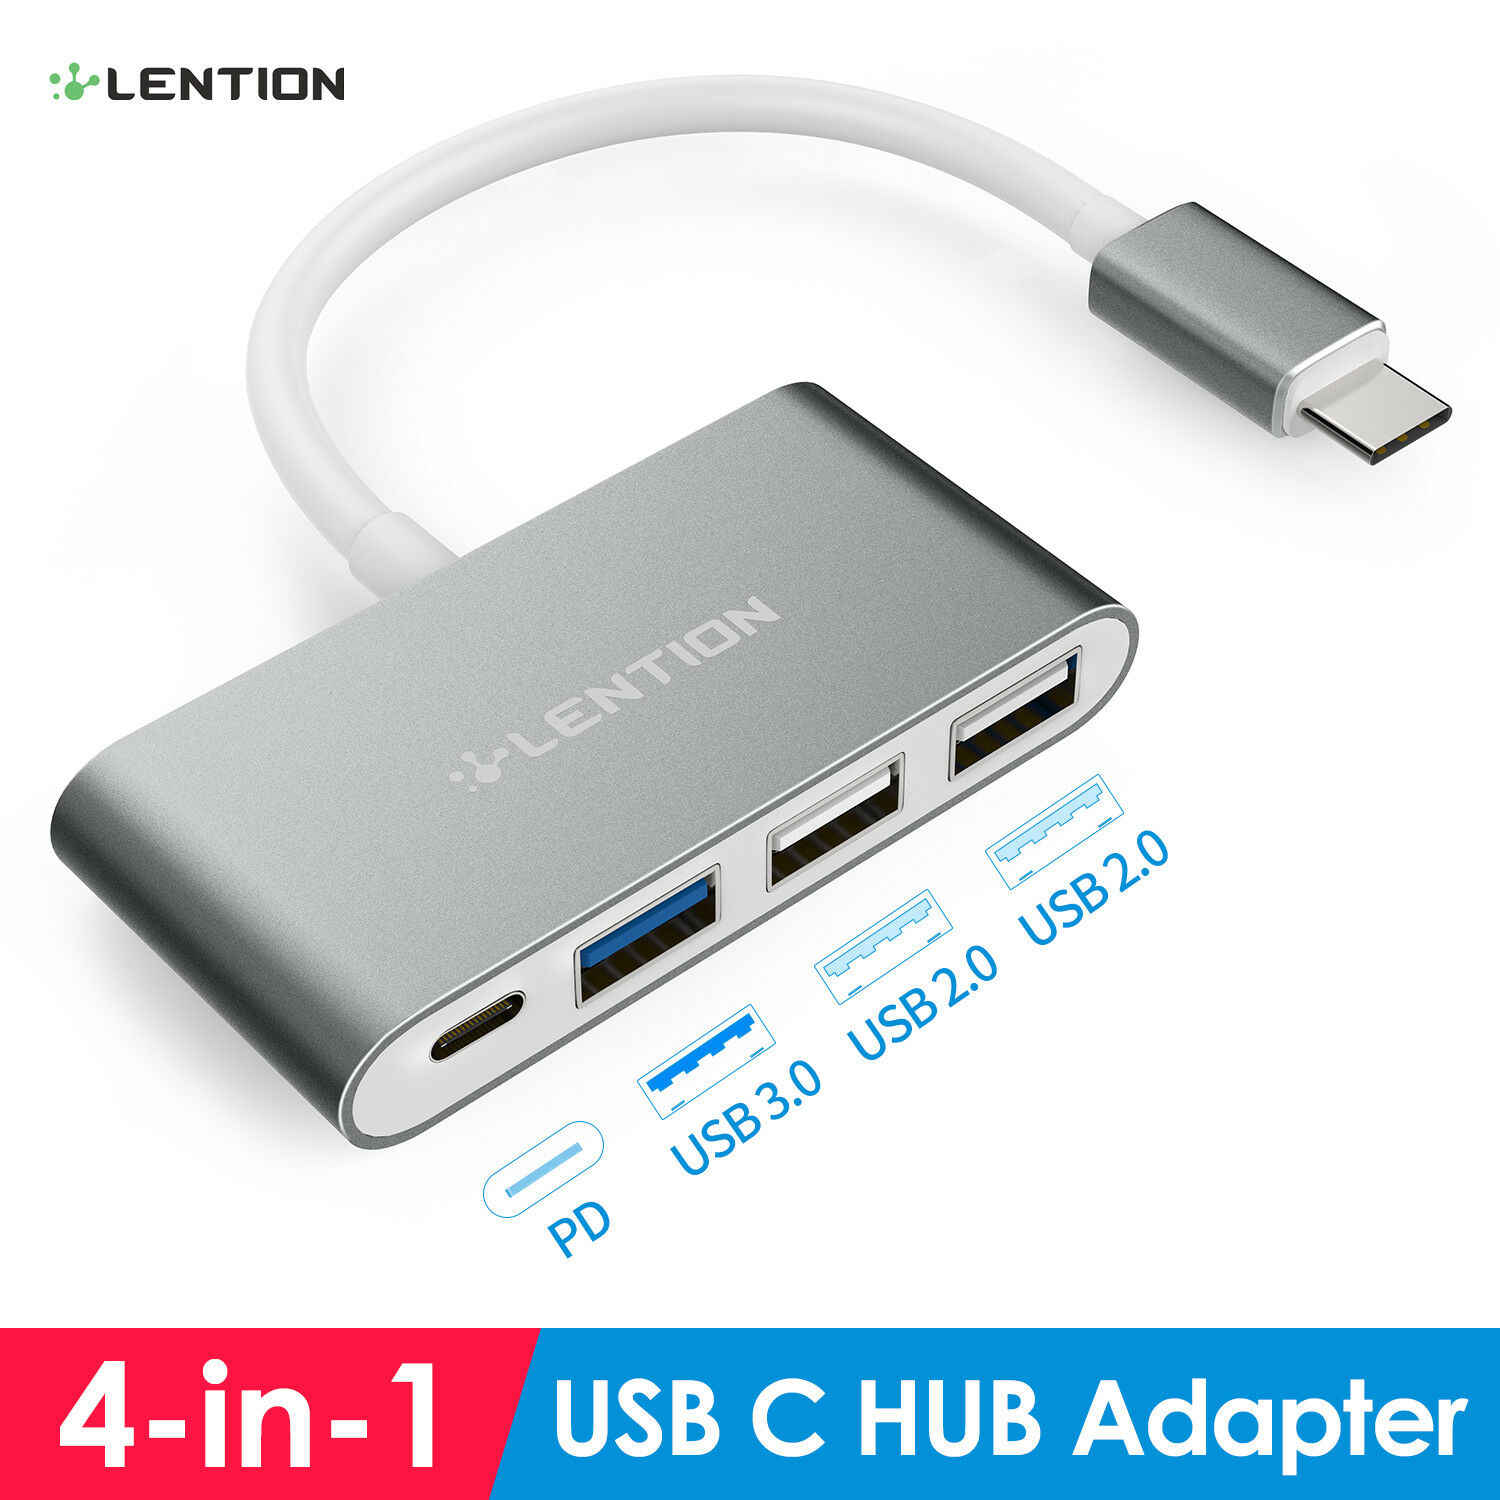 USB C Hub with Type C, USB 3.0, USB 2.0 Adapter for MacBook pro16 2019 , MacBook Air 2018 Pro 13/15 (Thunderbolt 3), ChromeBook